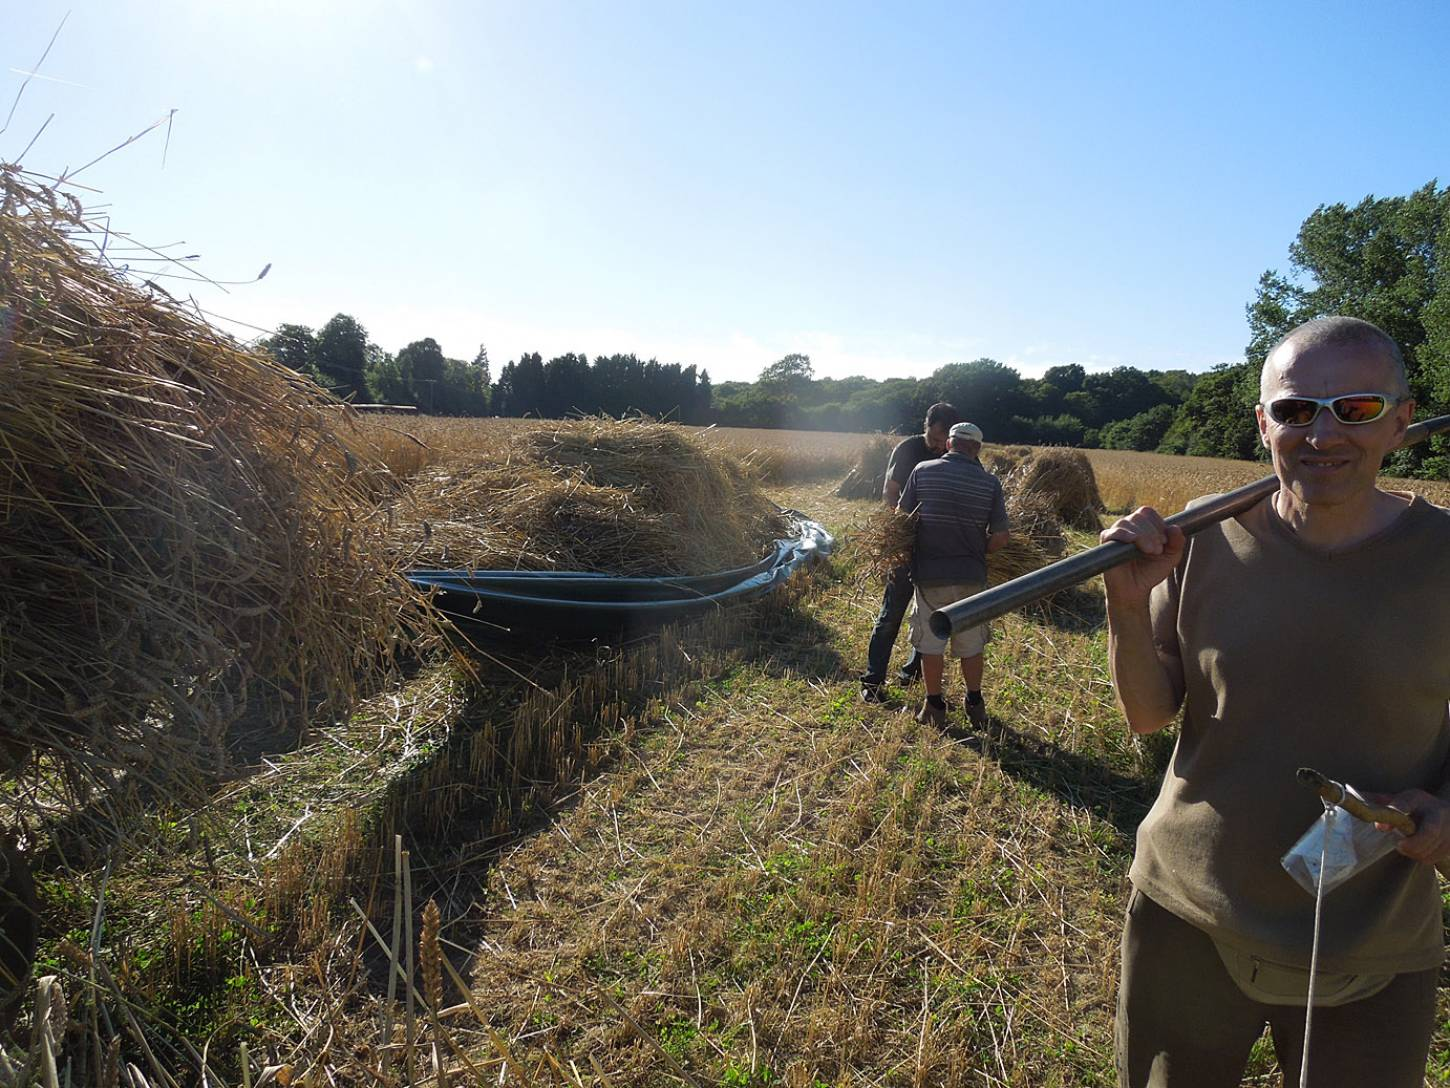 WoWo manual harvest - harvest home - 5:46pm&nbsp;9<sup>th</sup>&nbsp;Aug.&nbsp;'15